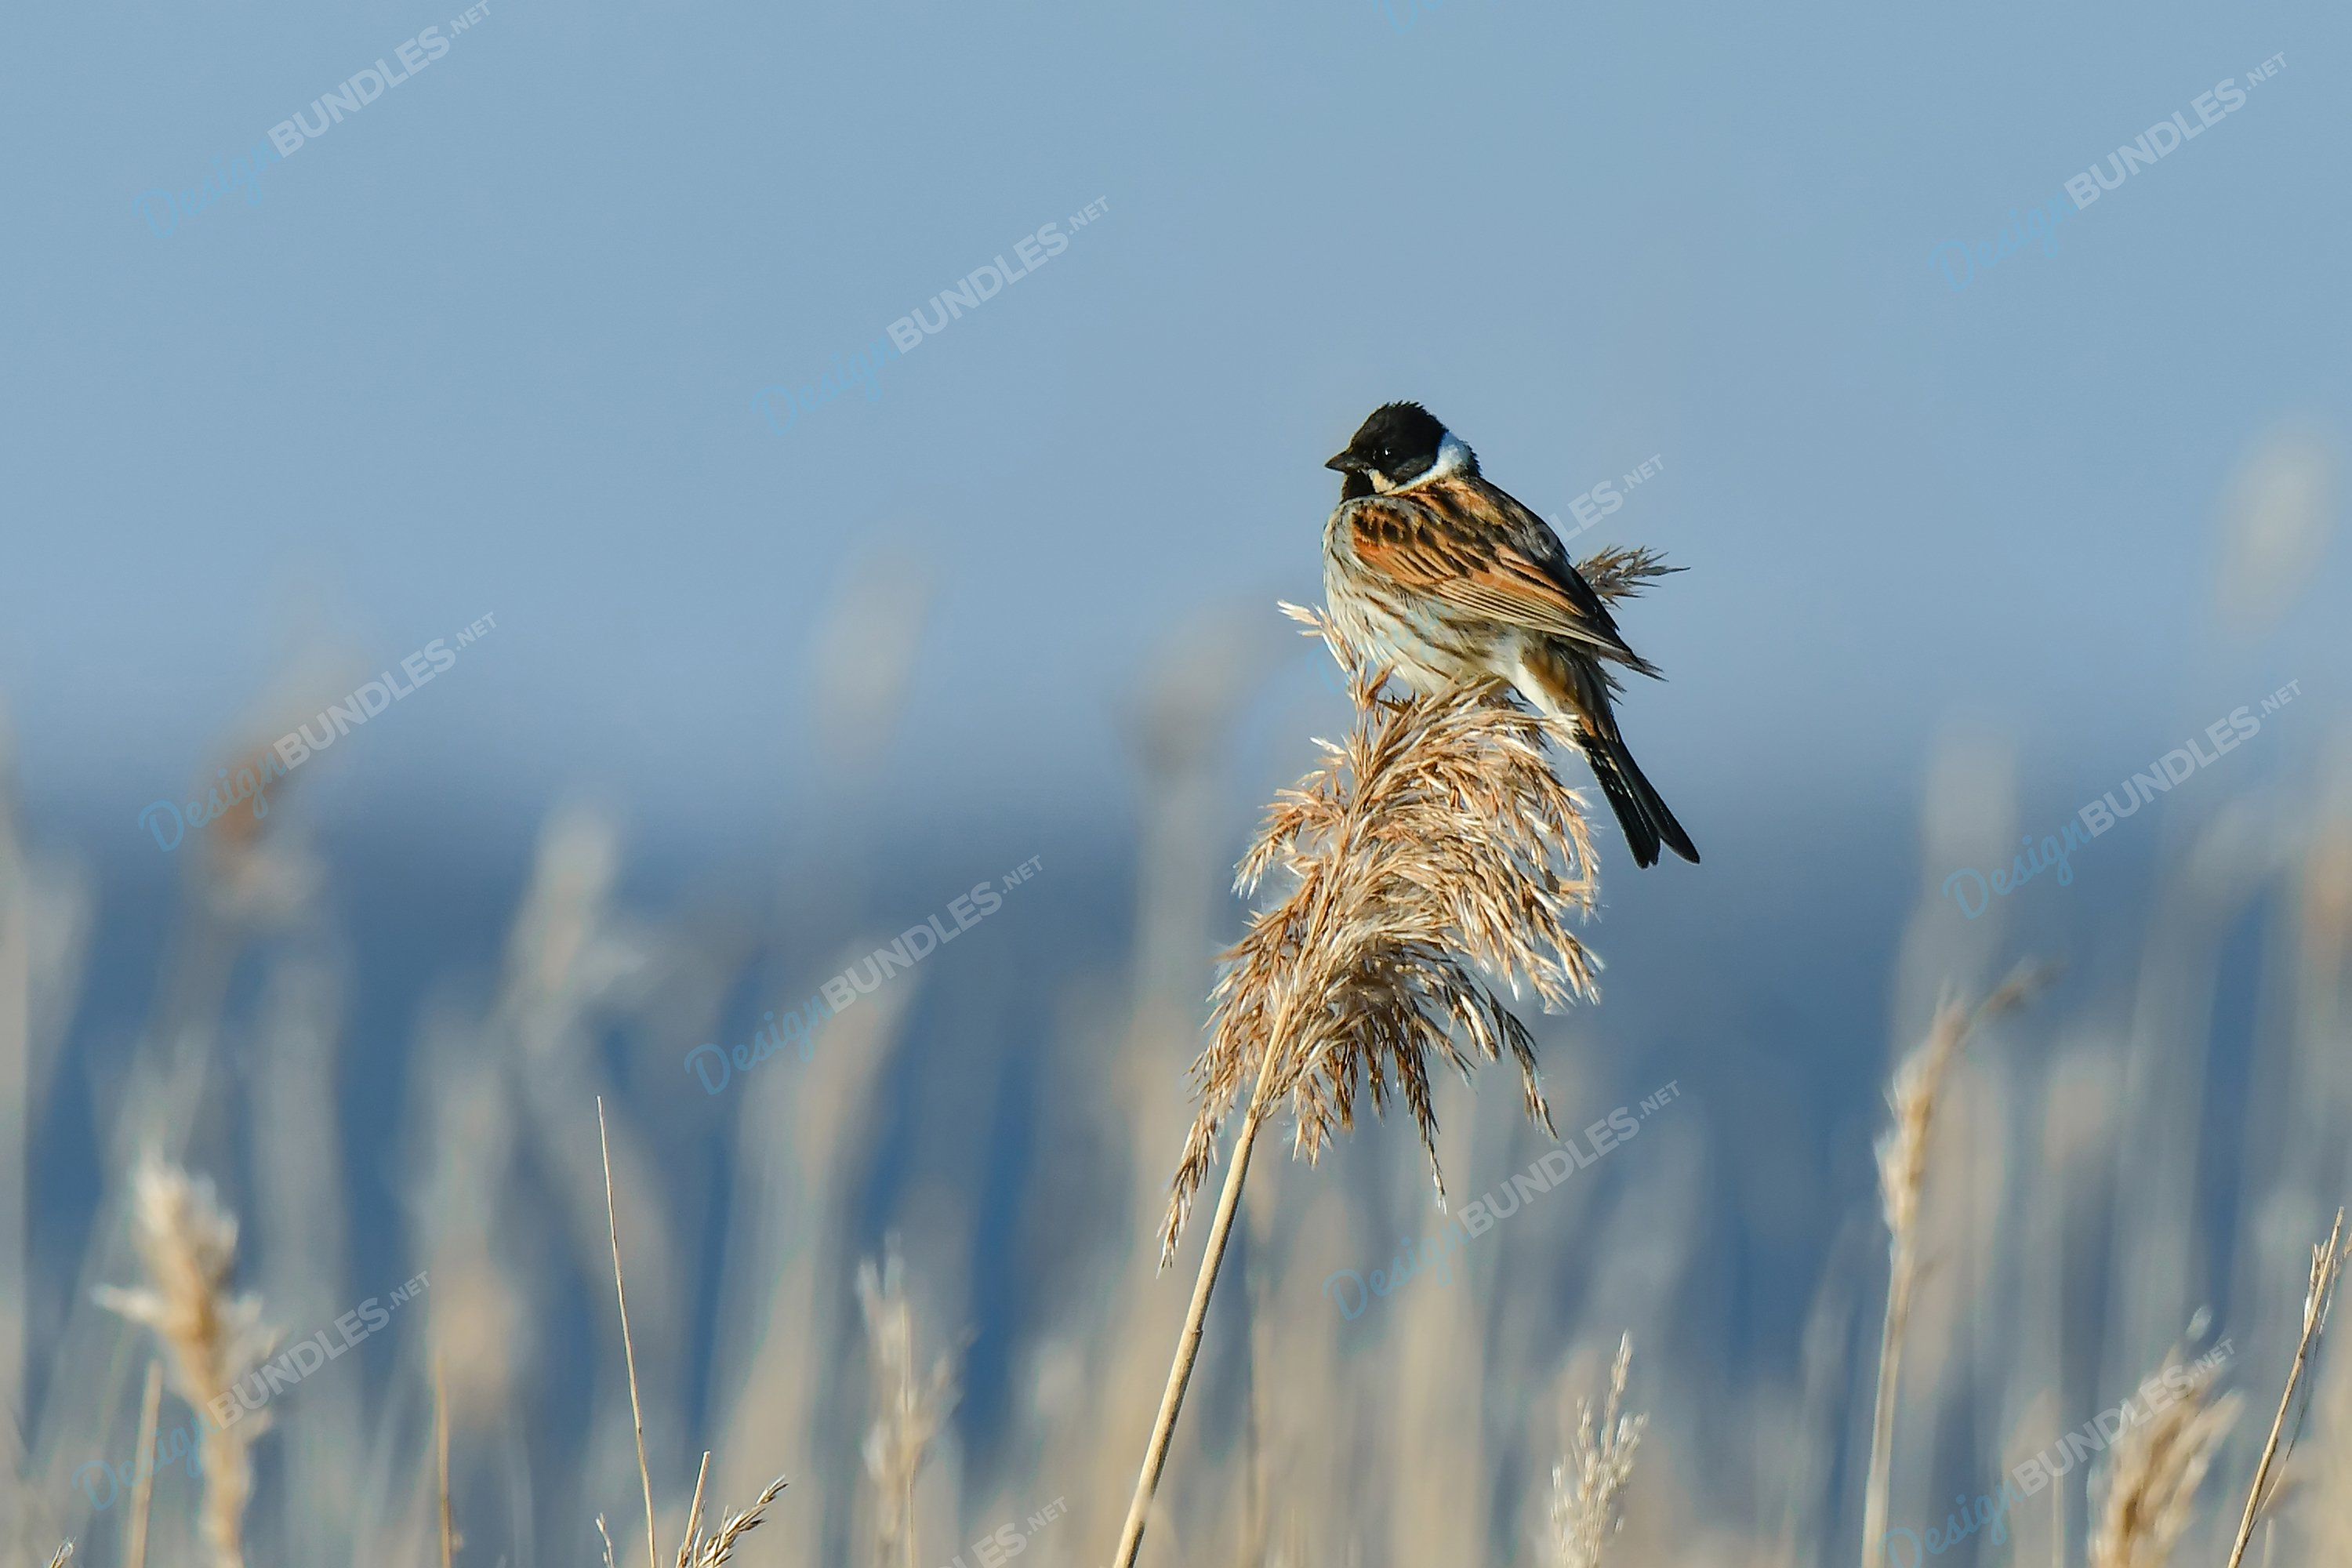 Stock Photo - The bird stands on the leaves example image 1